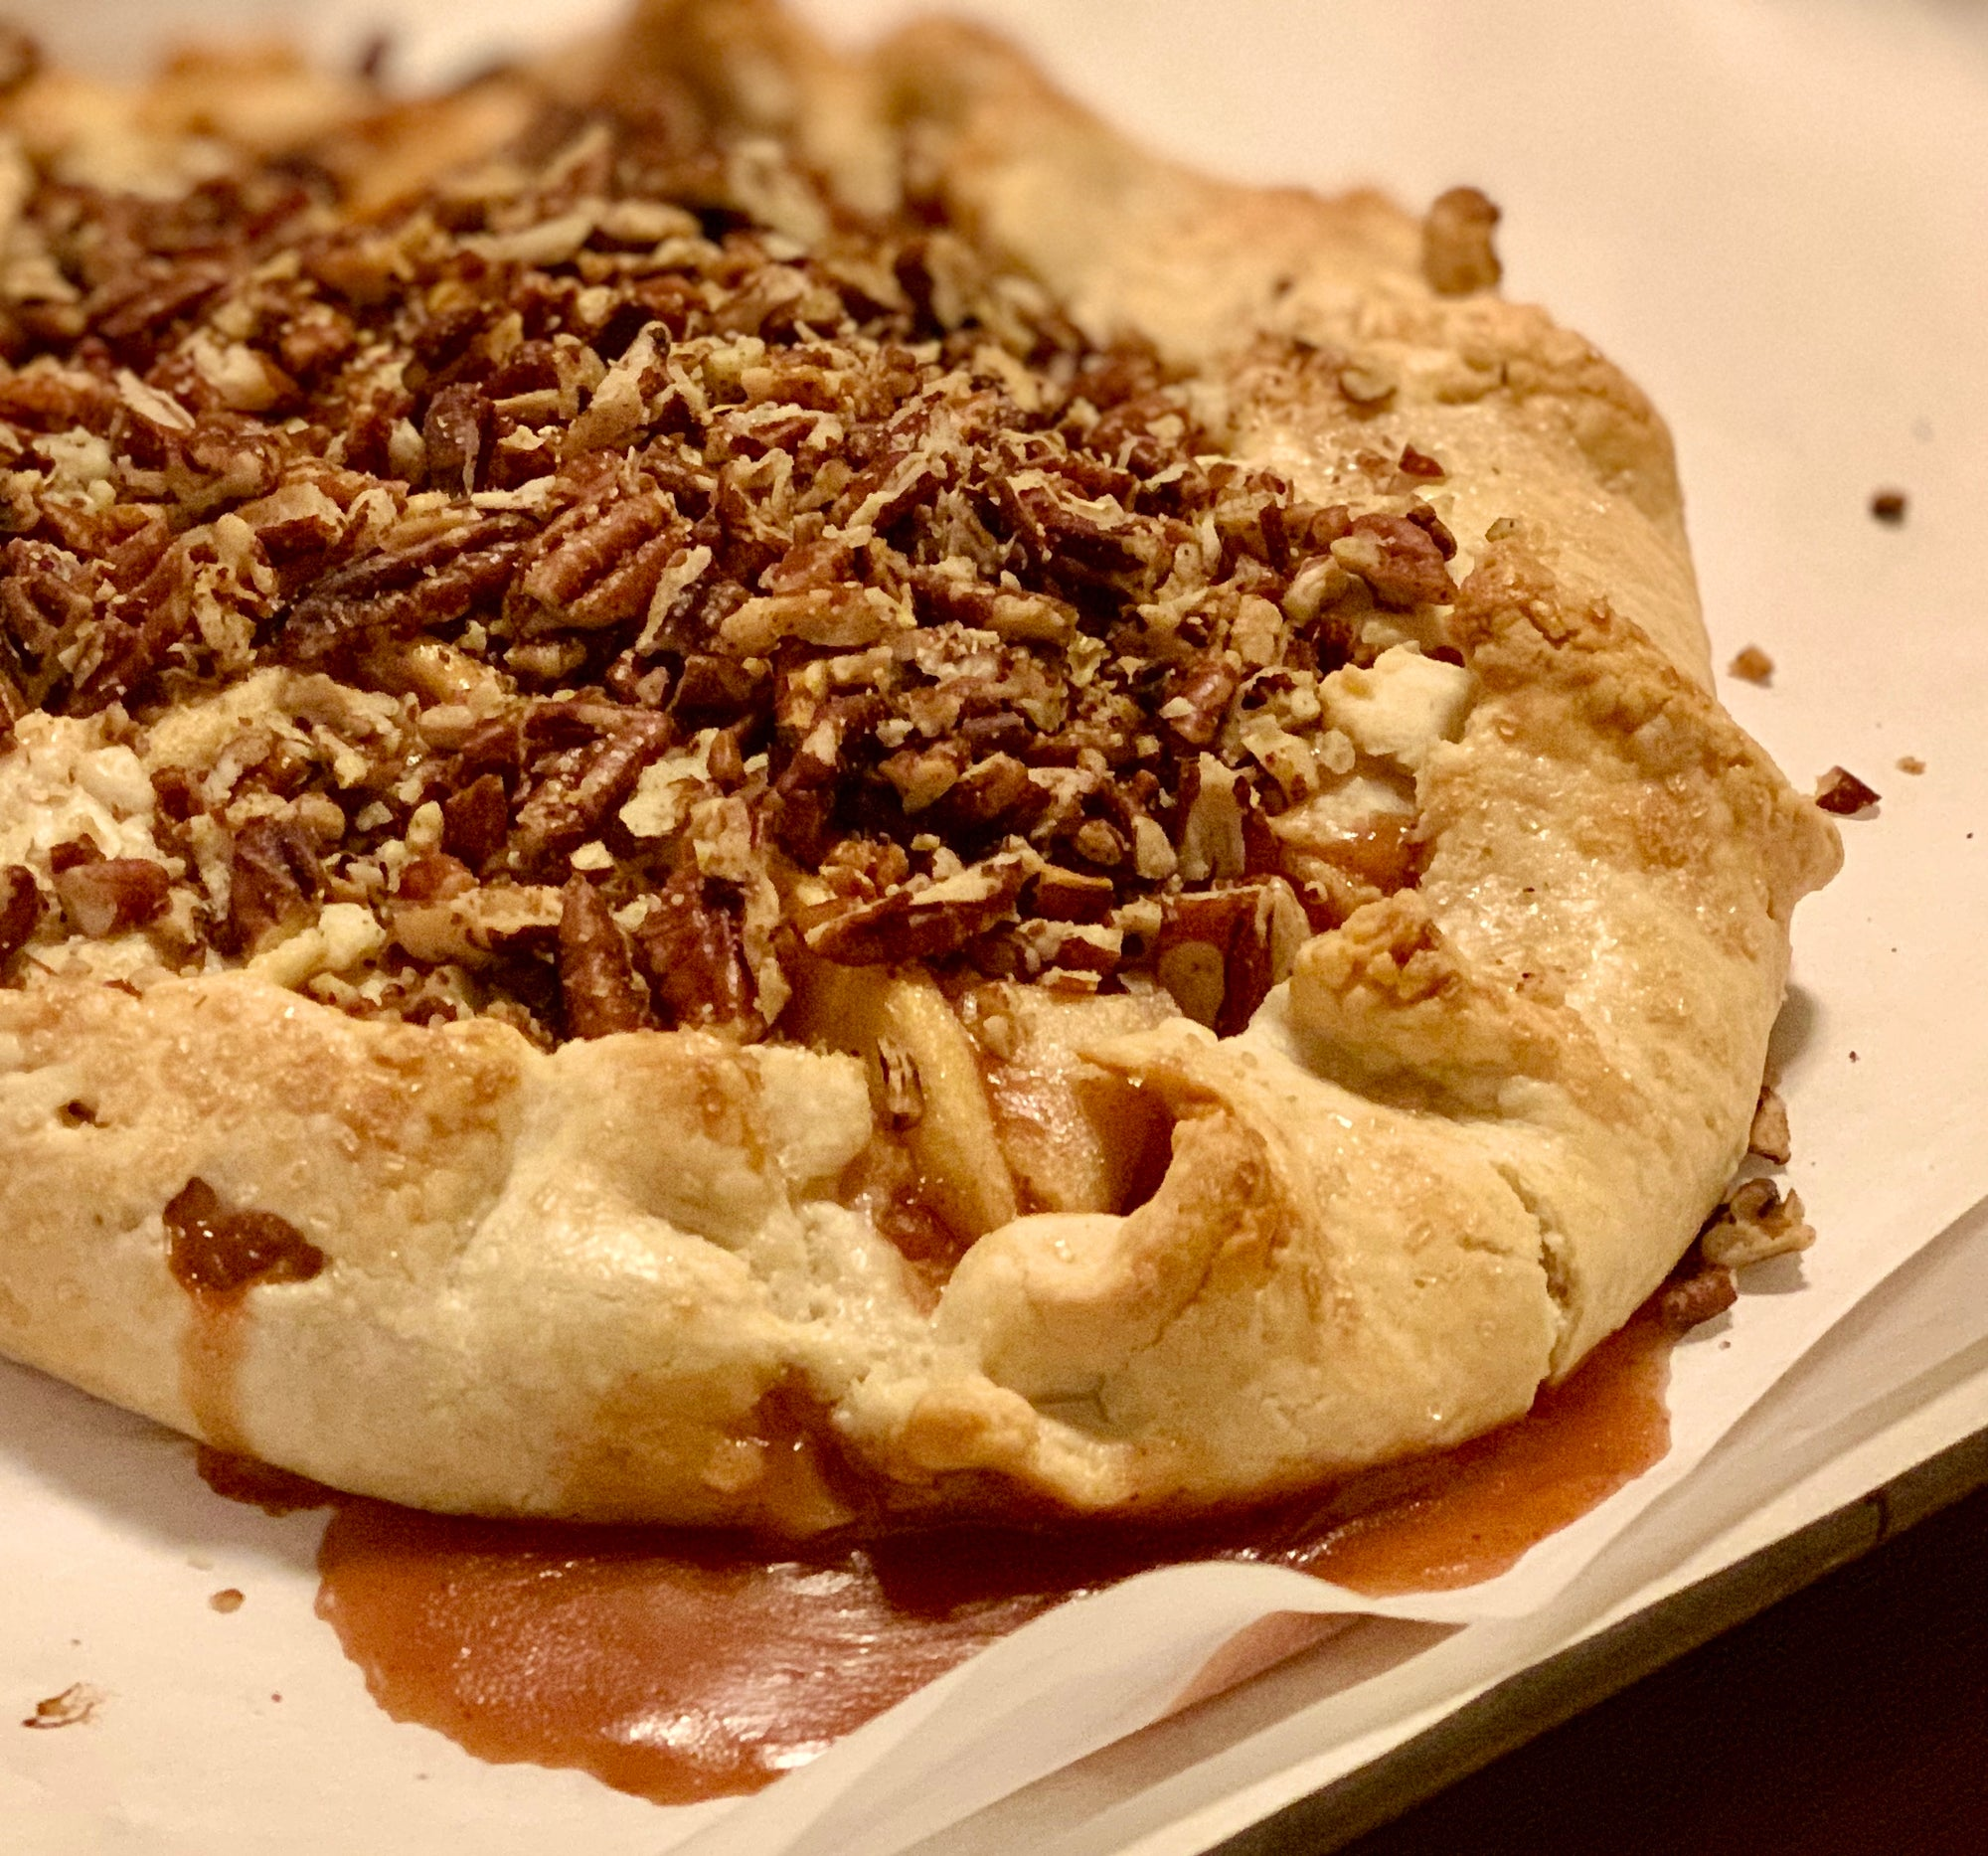 RECIPE: Salted Caramel Apple Galette with Nutkrack Candied Pecans